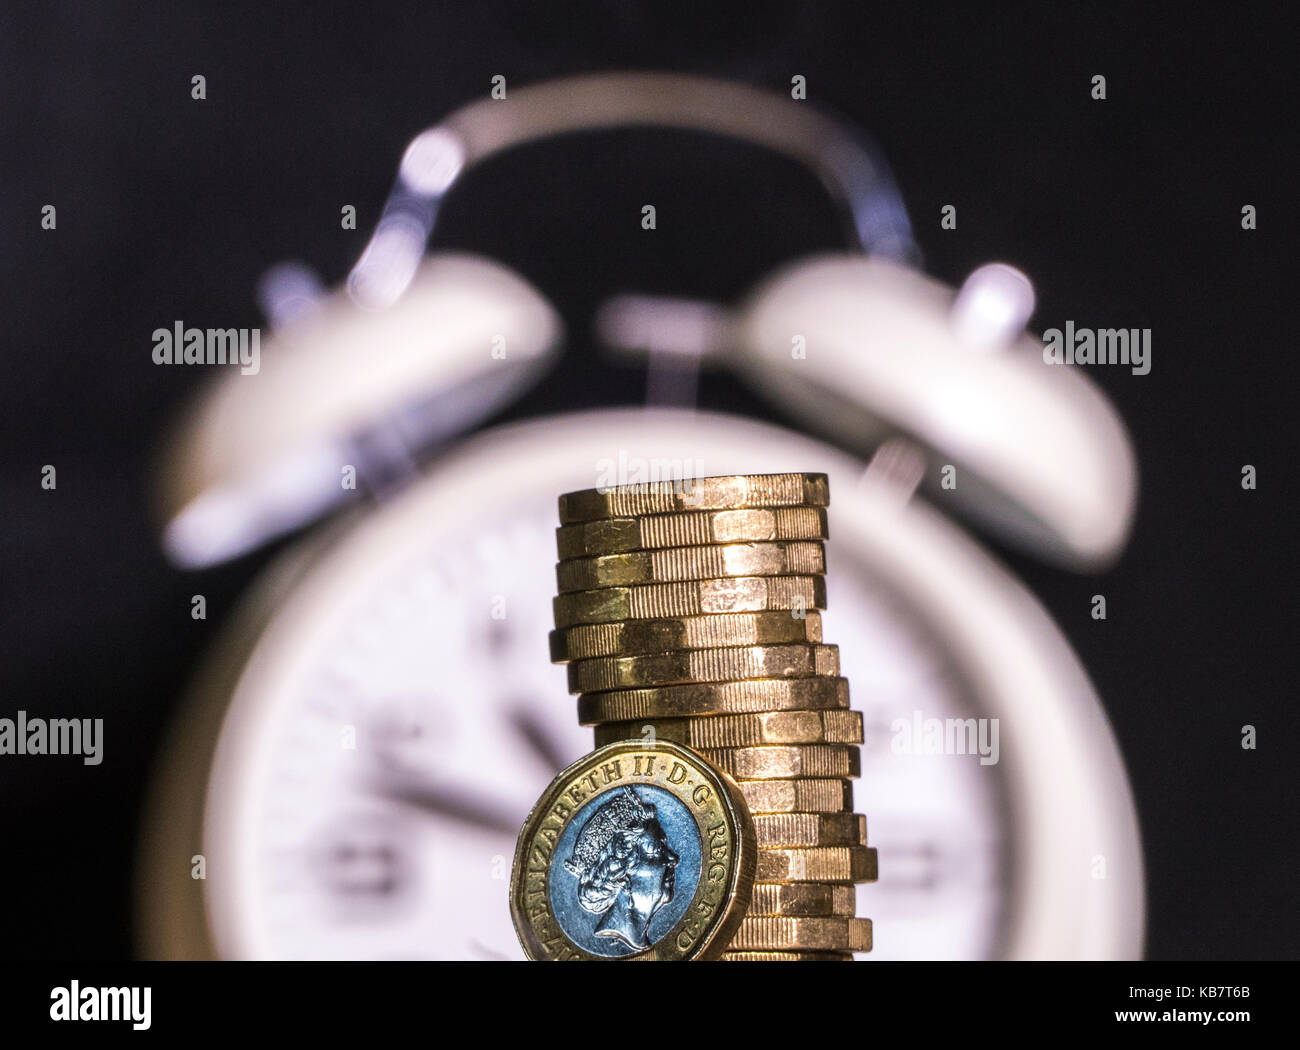 Defocused alarm clock with new pound coins. Concept of link between  timescale and British money / UK pounds sterling, - Stock Image